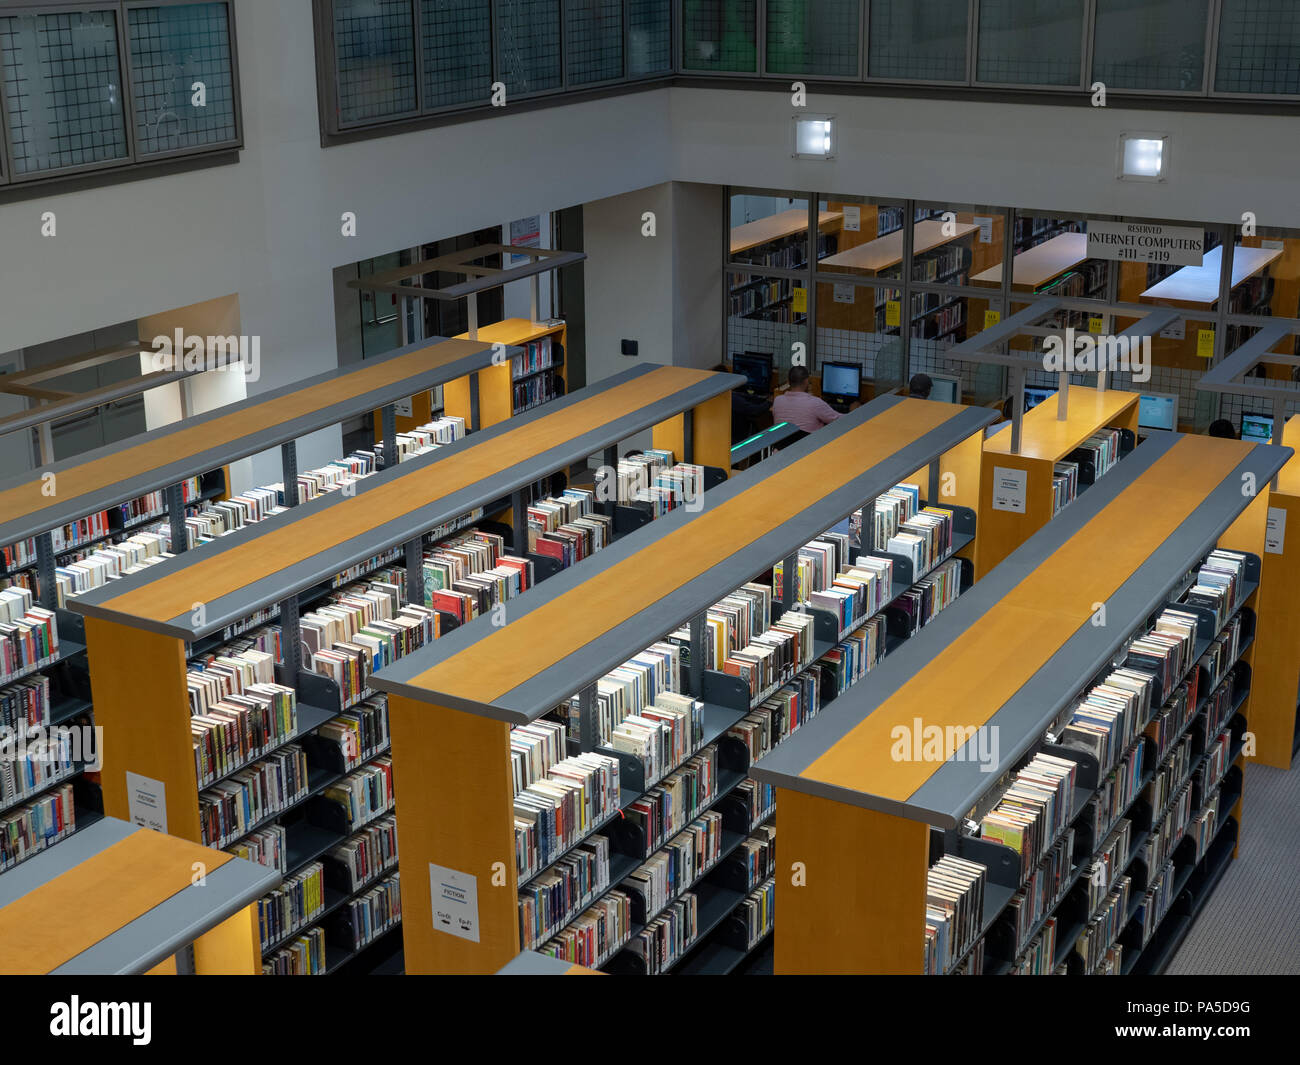 Rows of books among the stacks in the San Francisco Public Library Civic Center location - Stock Image